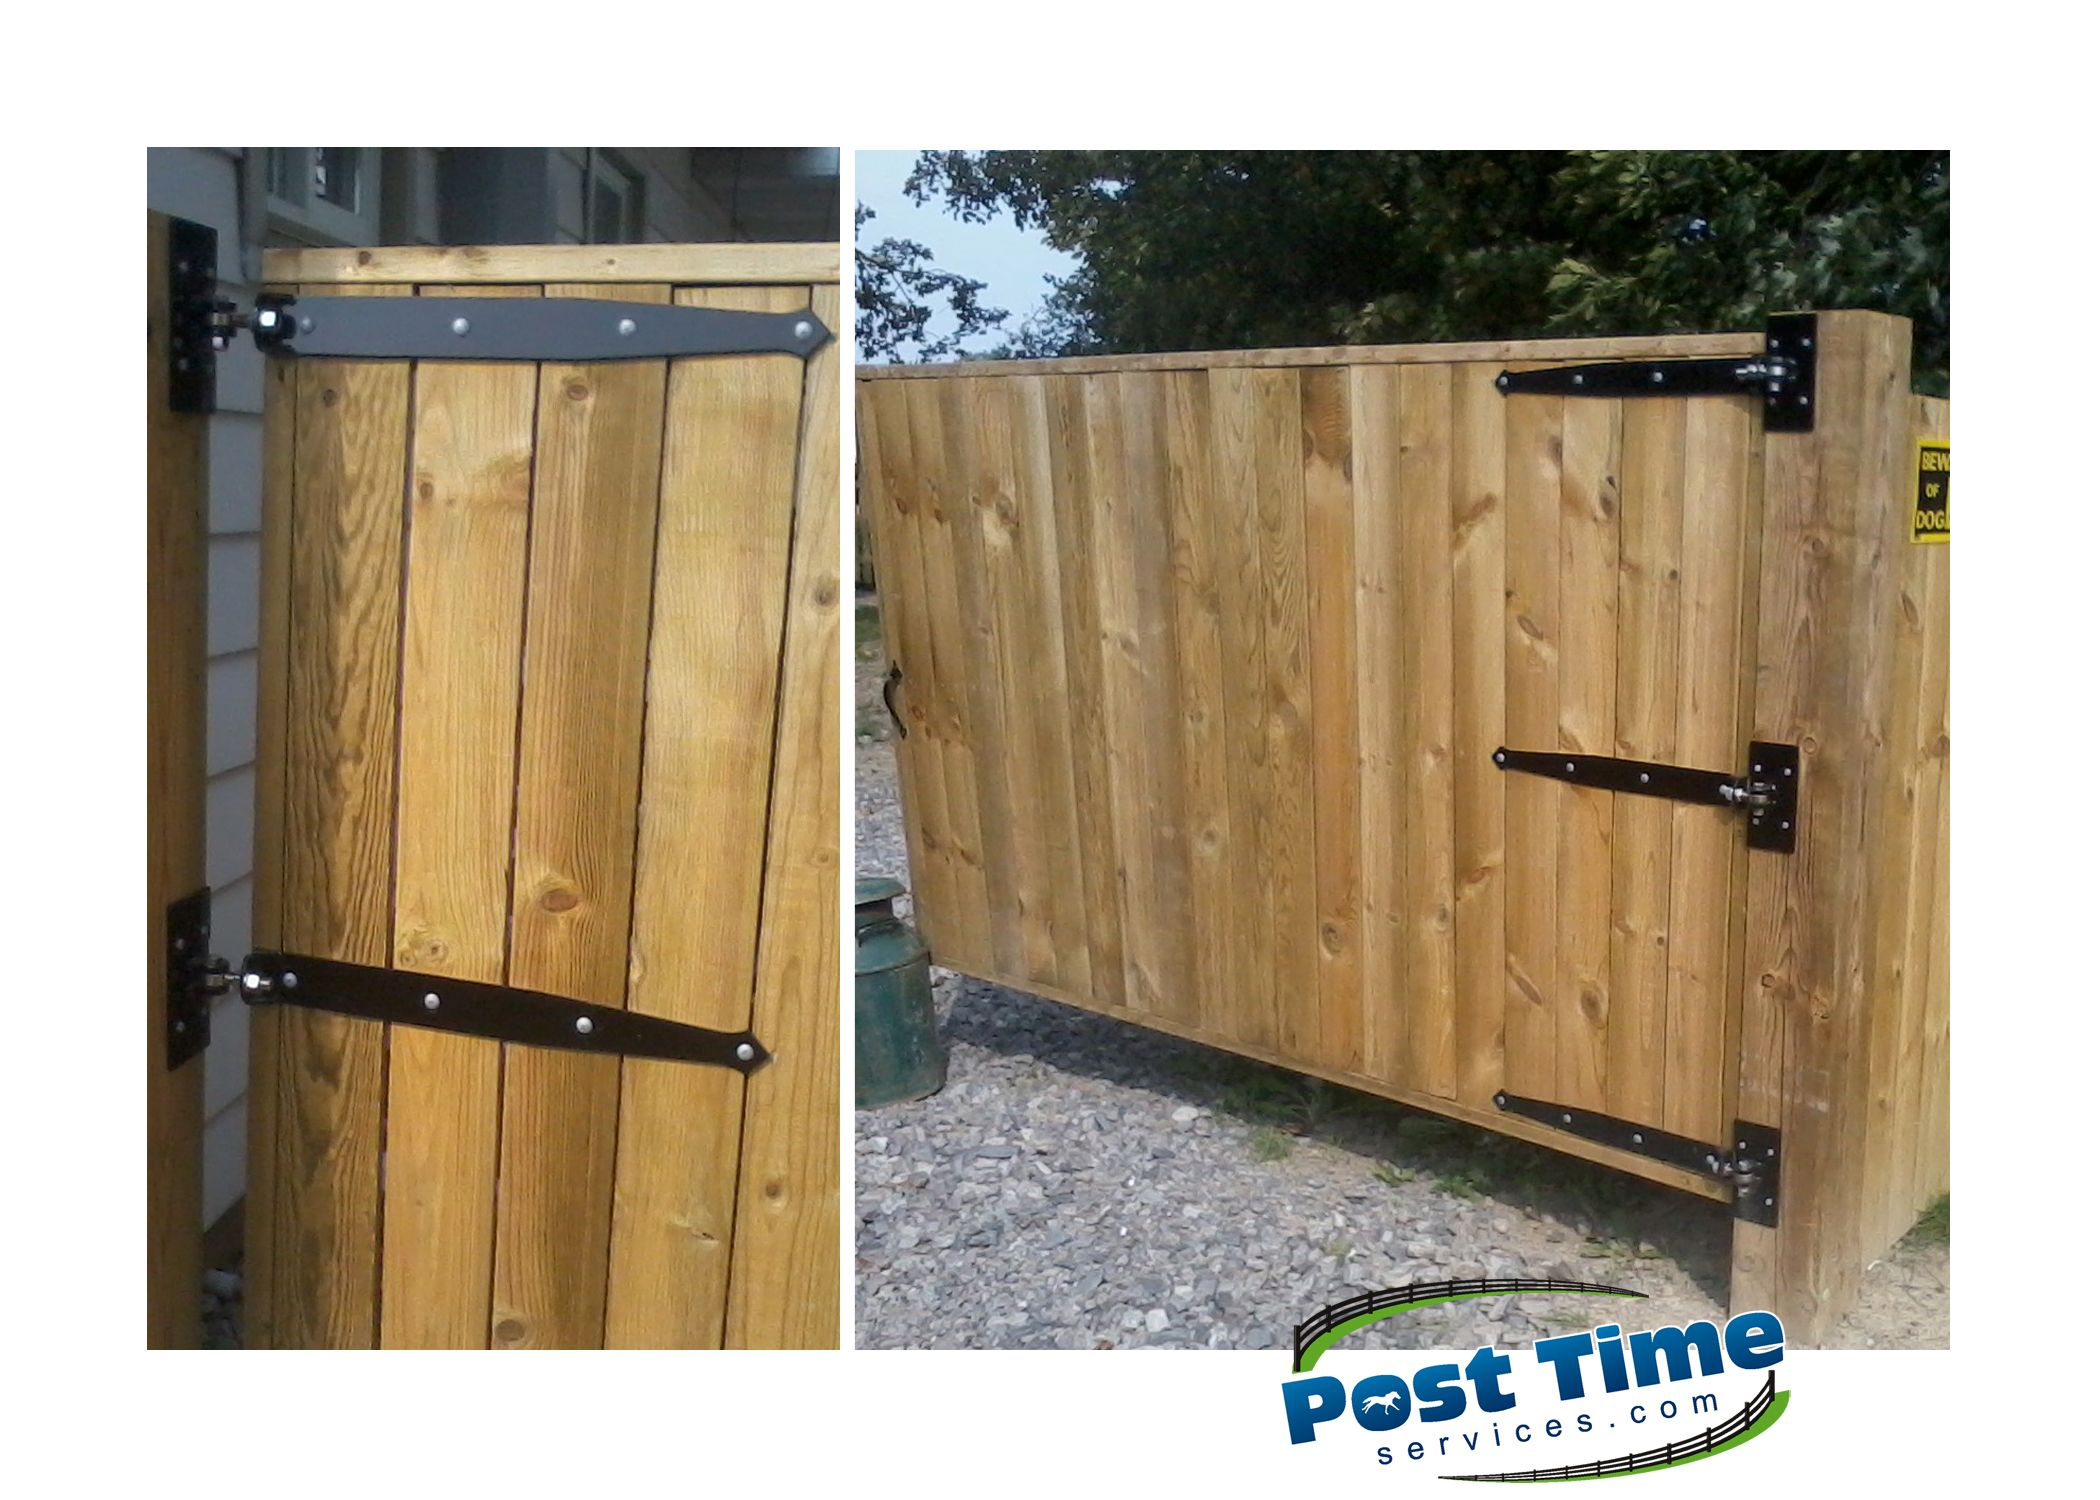 This Wood Driveway Gate Hangs Off A Solid 8 X8 Post With 24 Long Heavy Duty Adjustable Black Hinges Availab Wood Gates Driveway Driveway Gate Electric Gates